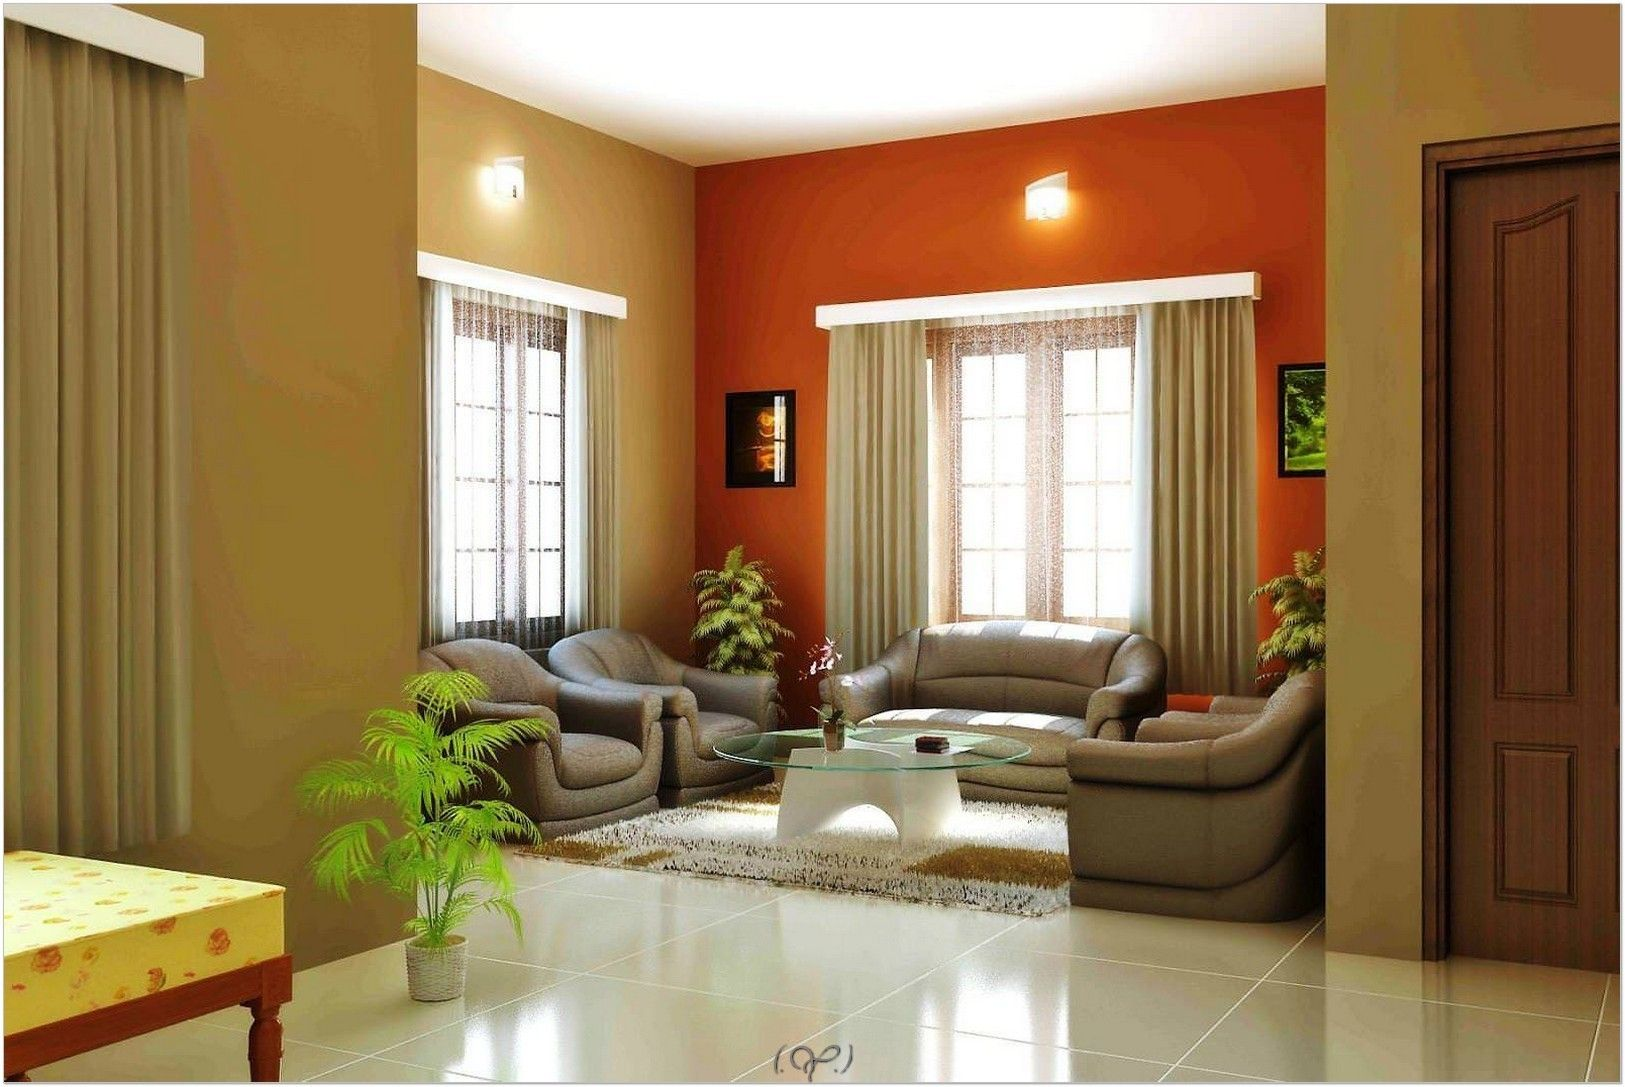 Interior Paint Color Schemes With Dual Orange Wall And Brown Combination Matching Installation Grey Decorating